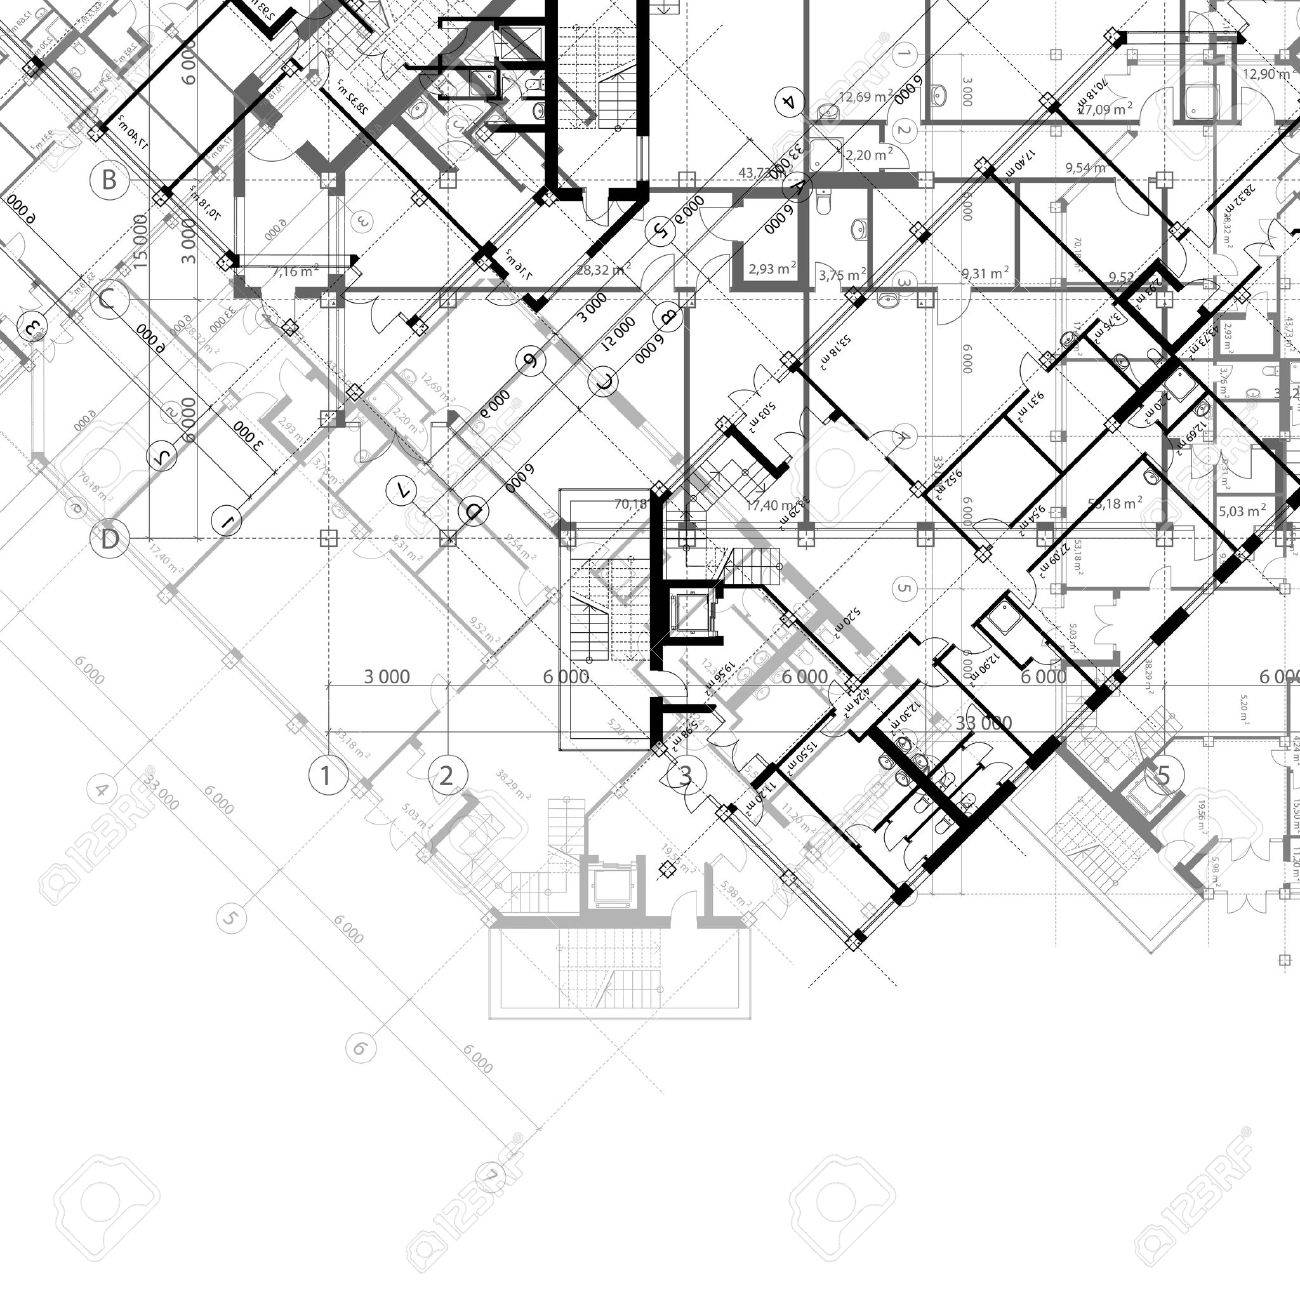 1300x1300 Architectural Black And White Background With Plans Of Building